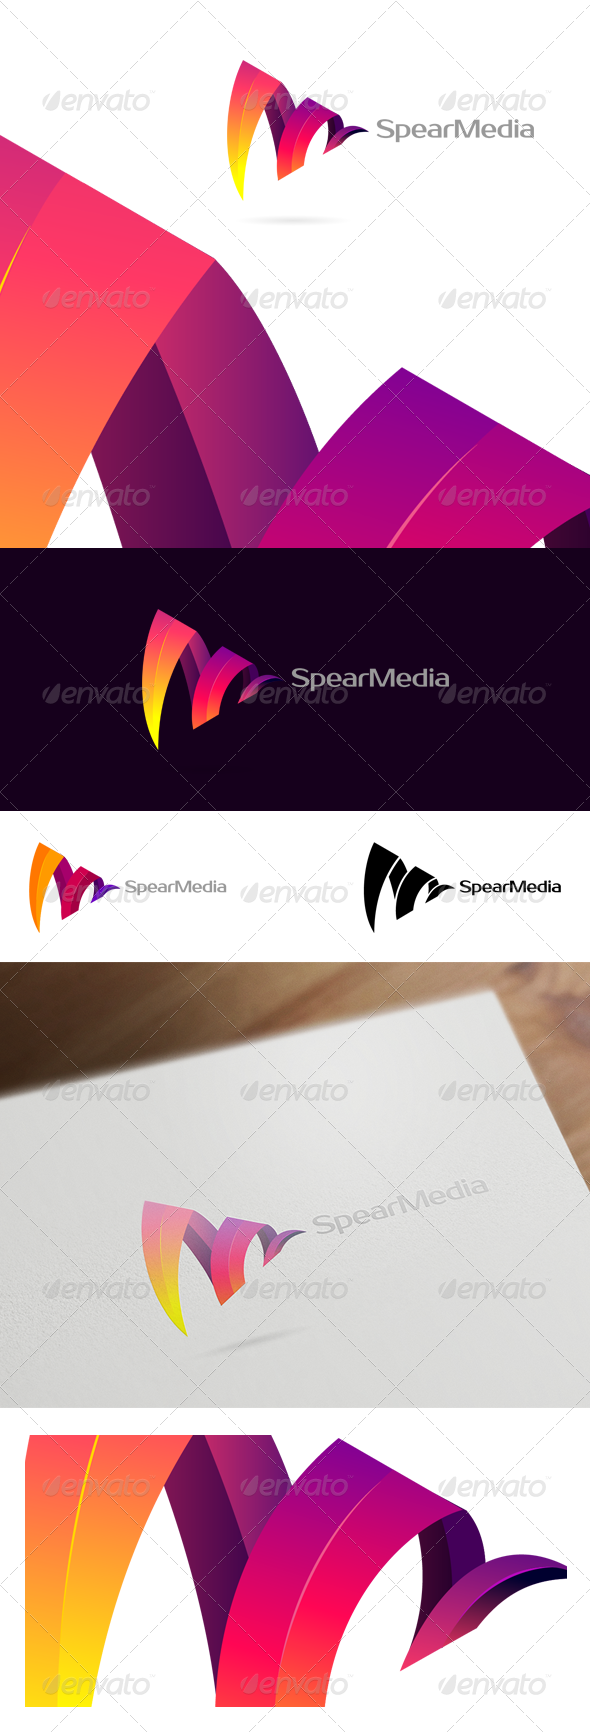 Spear Media - Colorful Corporate & Creative Logo - Vector Abstract